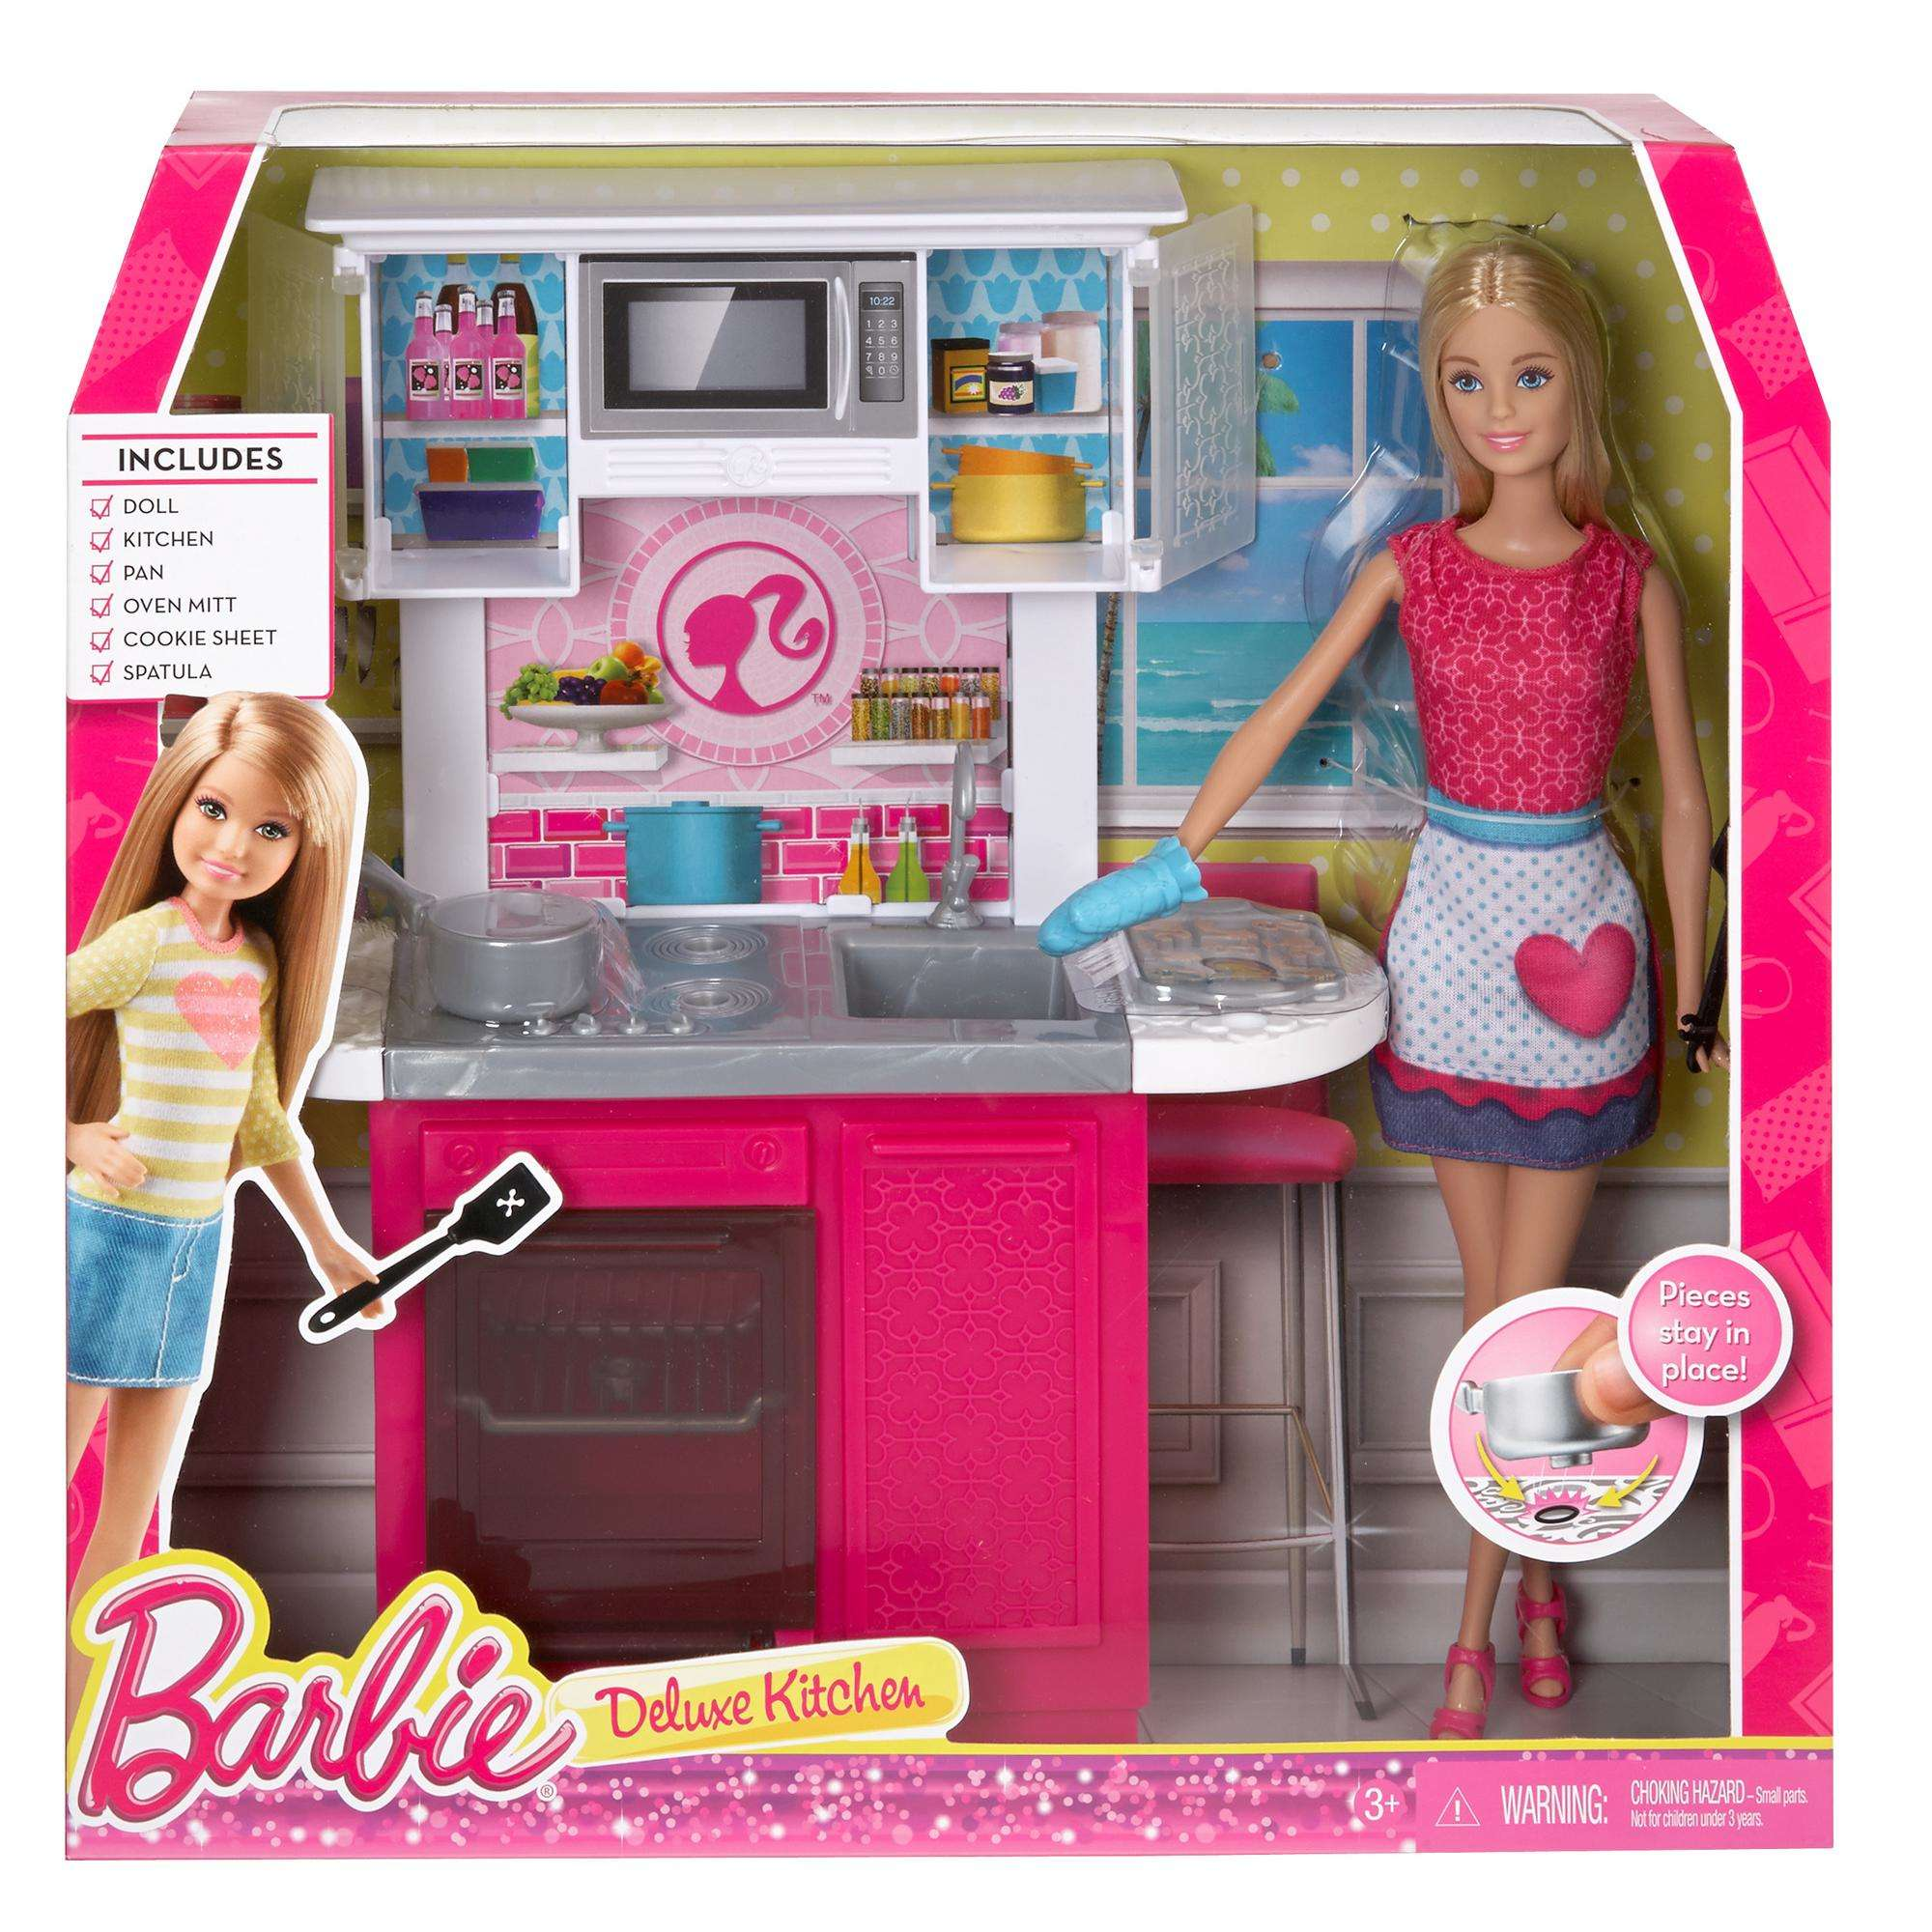 barbie kitchen playset remoldeling deluxe and doll walmart com